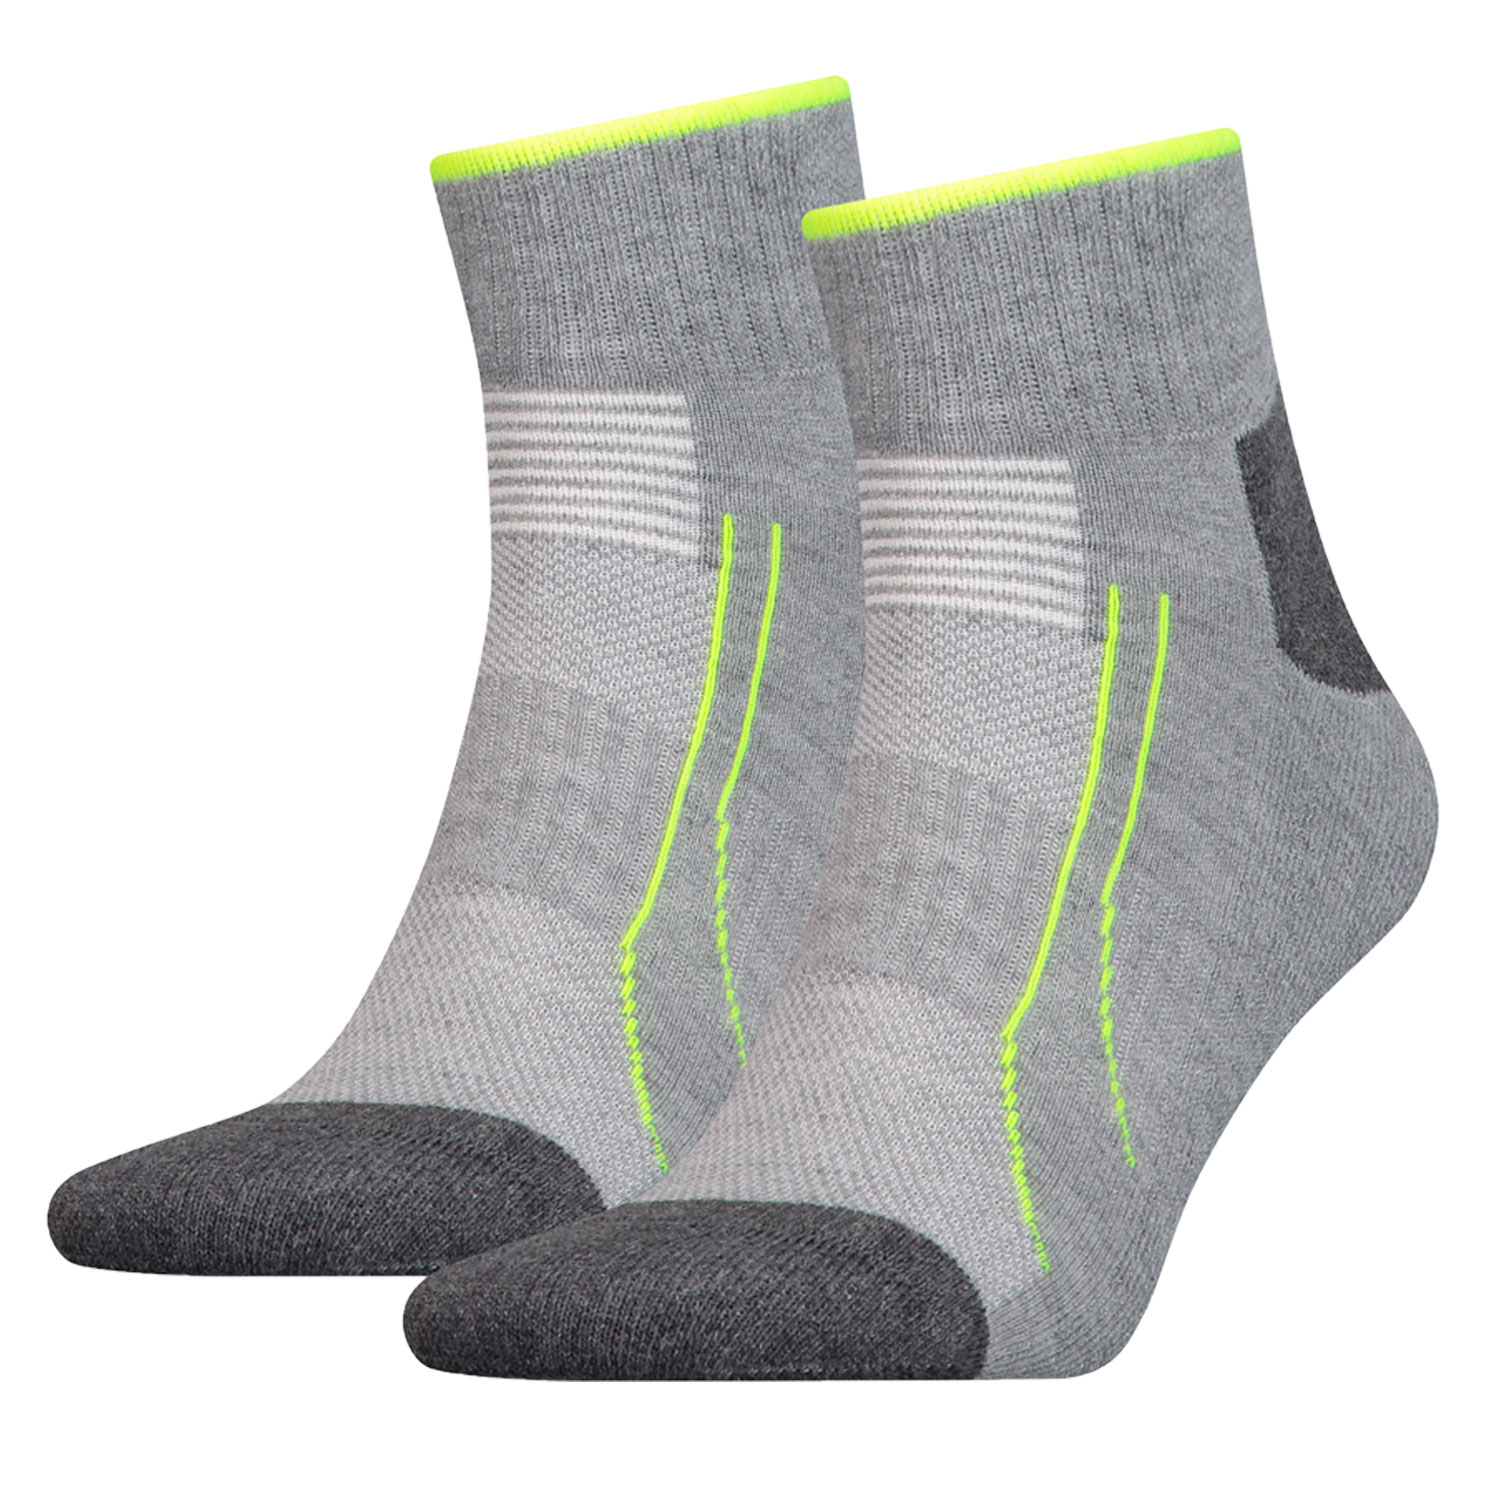 Puma Performance Train Quarter 8 Paar Kurzsocken Sportsocken Allround Sports – Bild 4